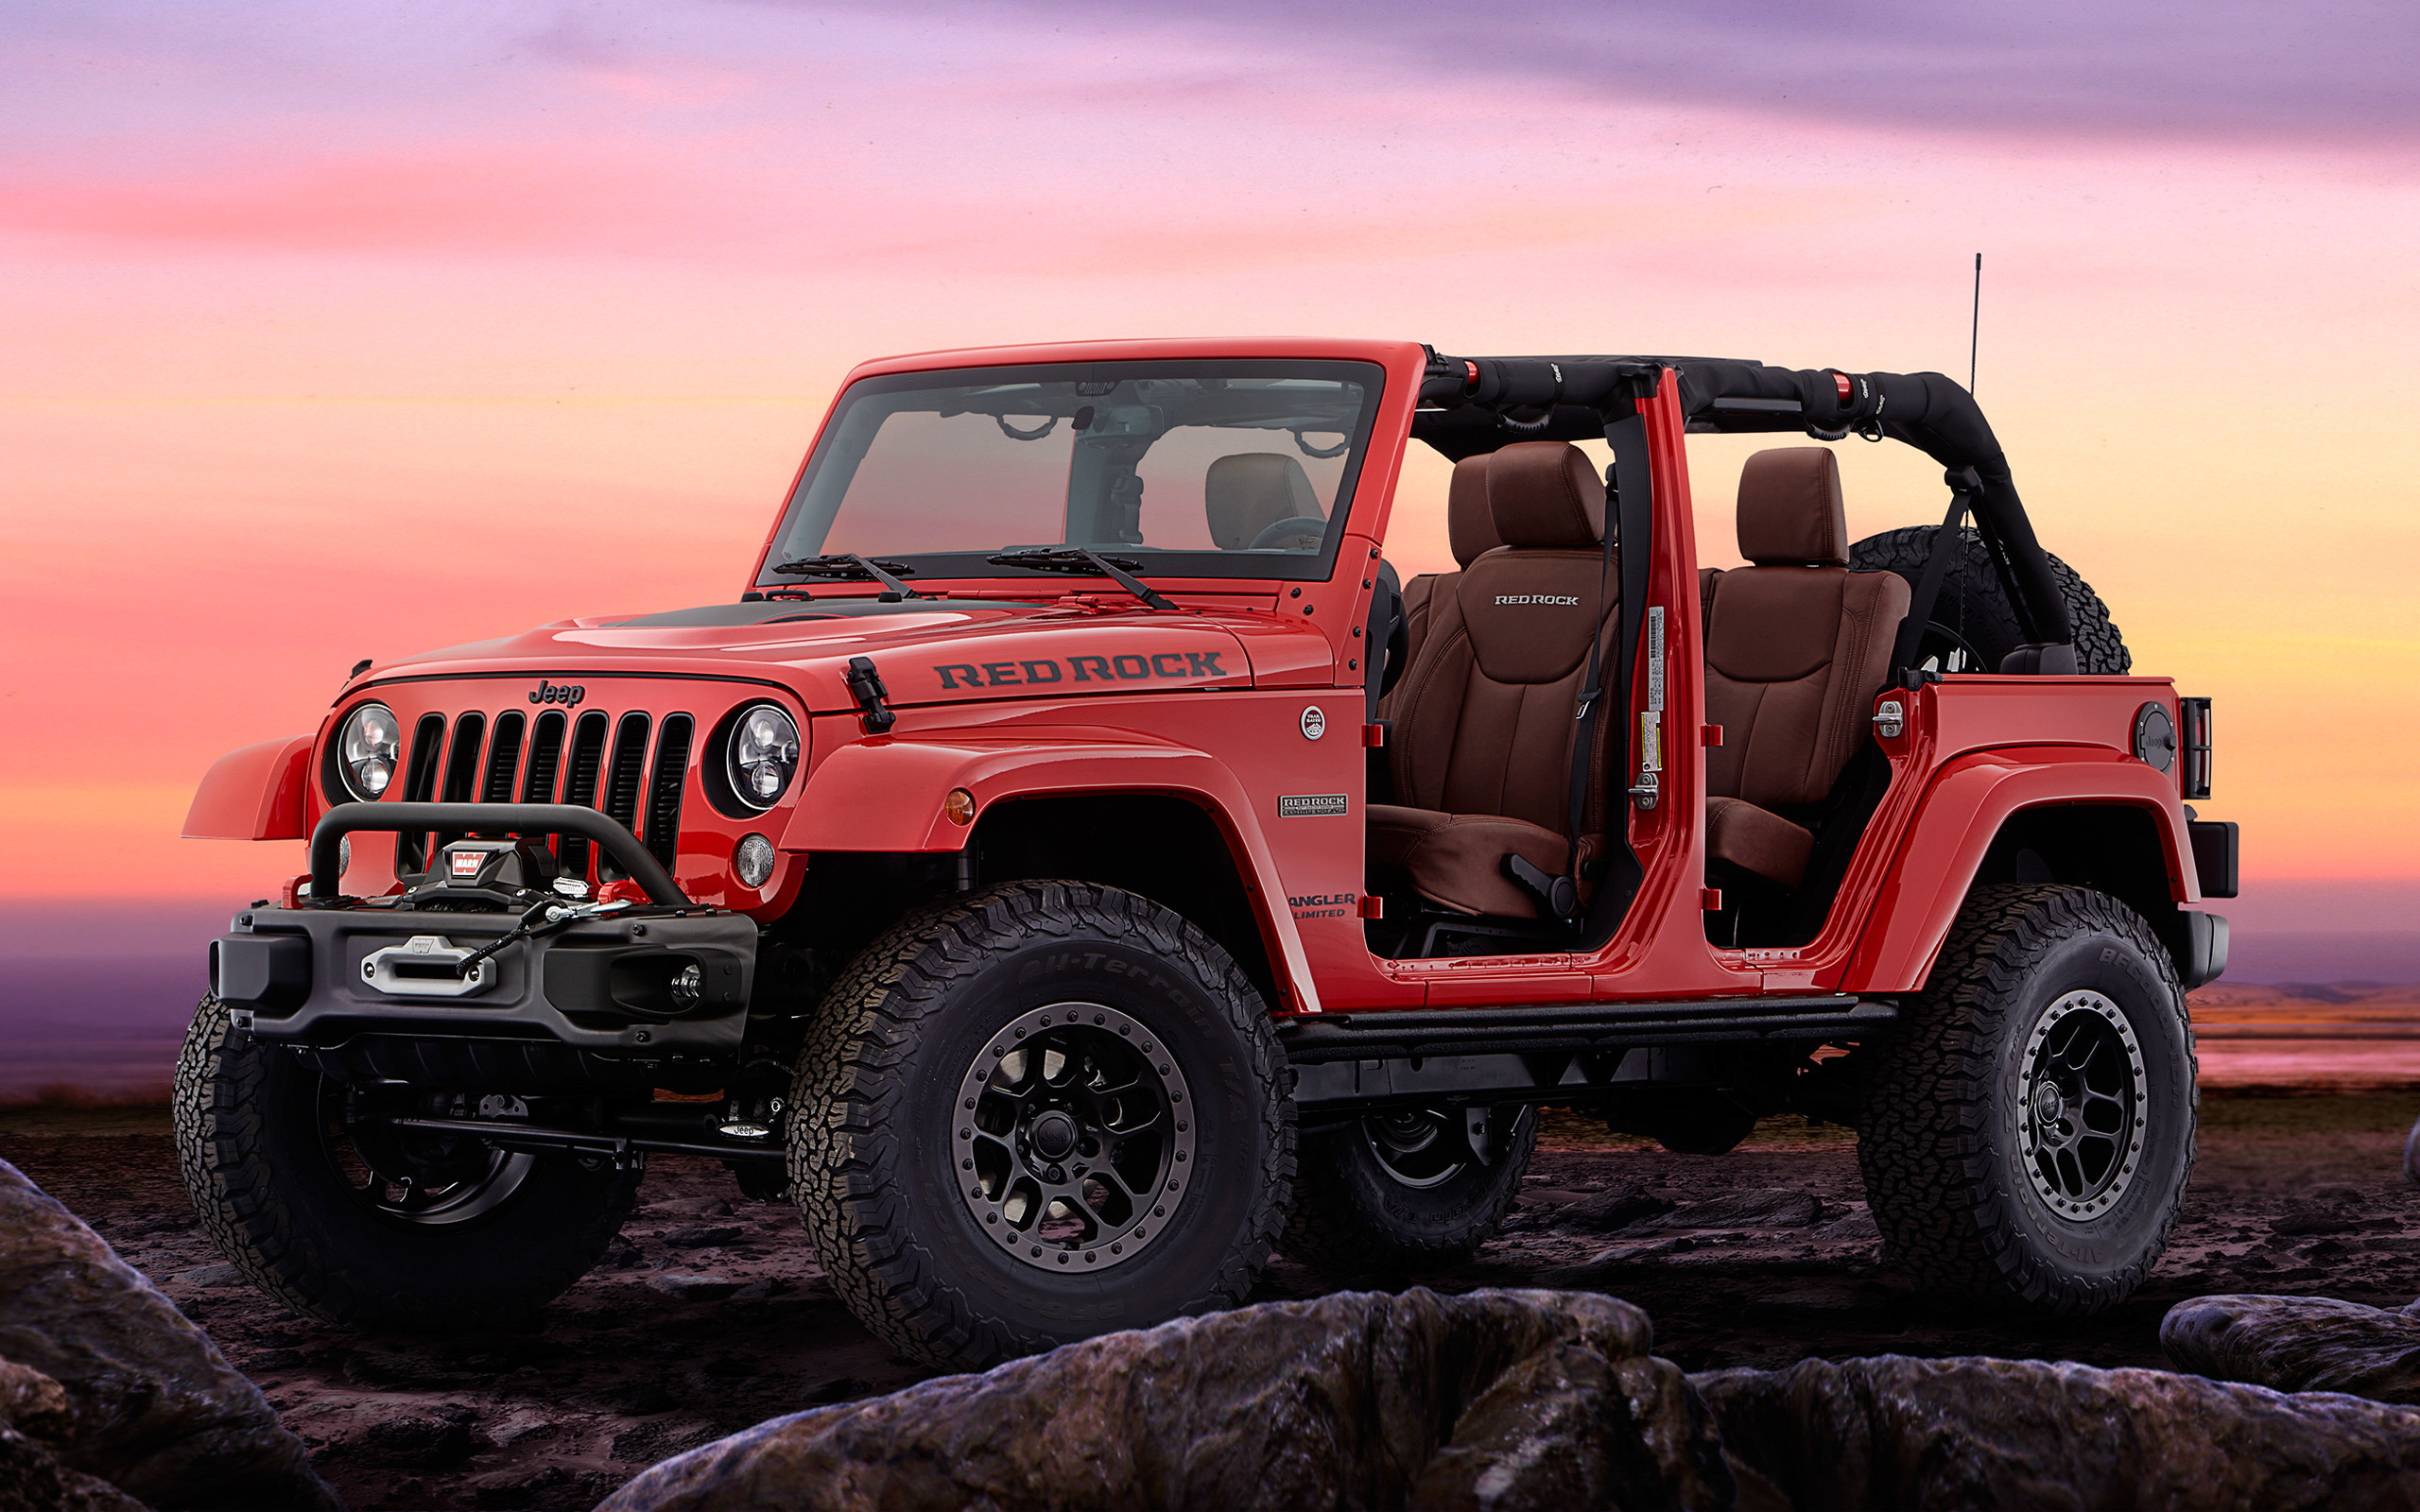 Res: 2560x1600, Jeep Wrangler Red Rock Concept Wallpaper